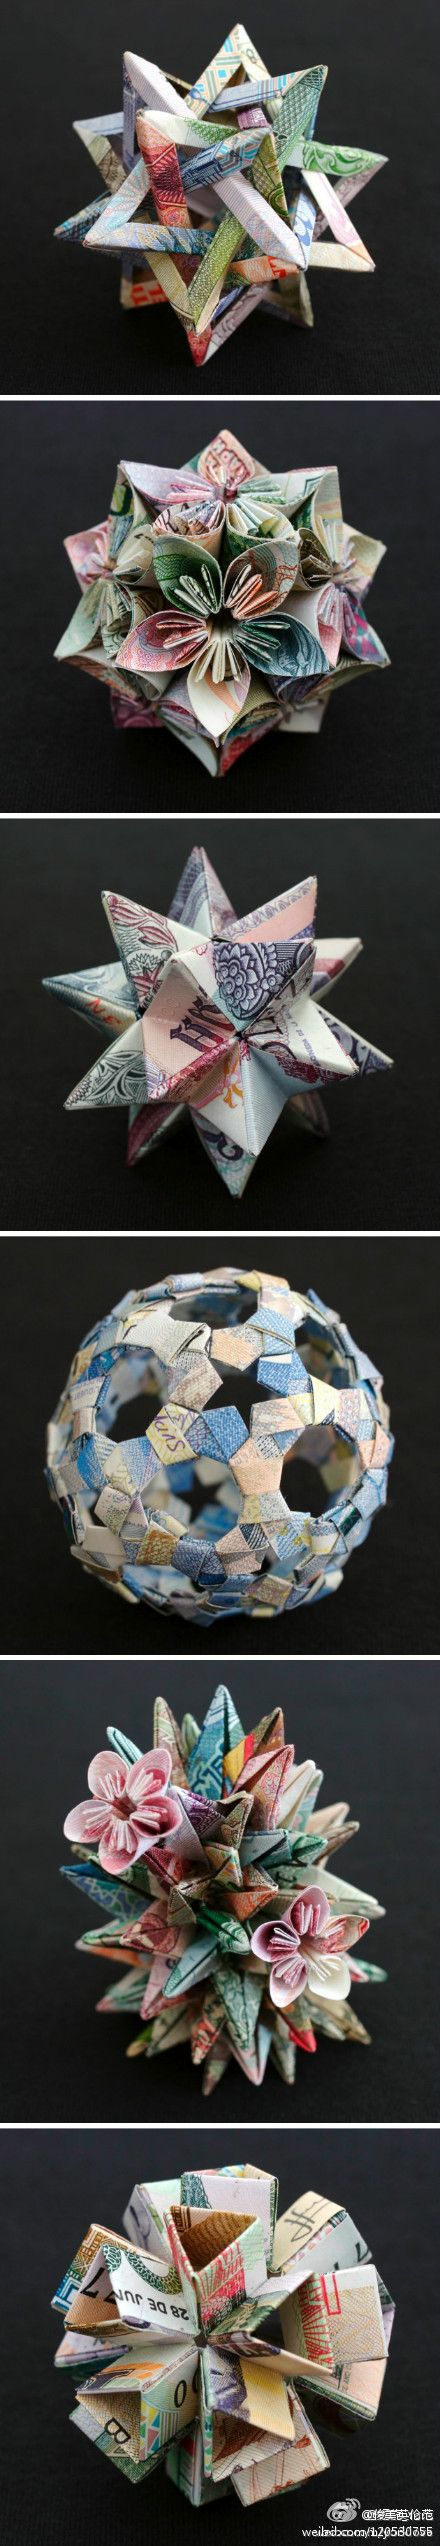 Origami Flower Ball With Money Diy Ornaments Paper Diy